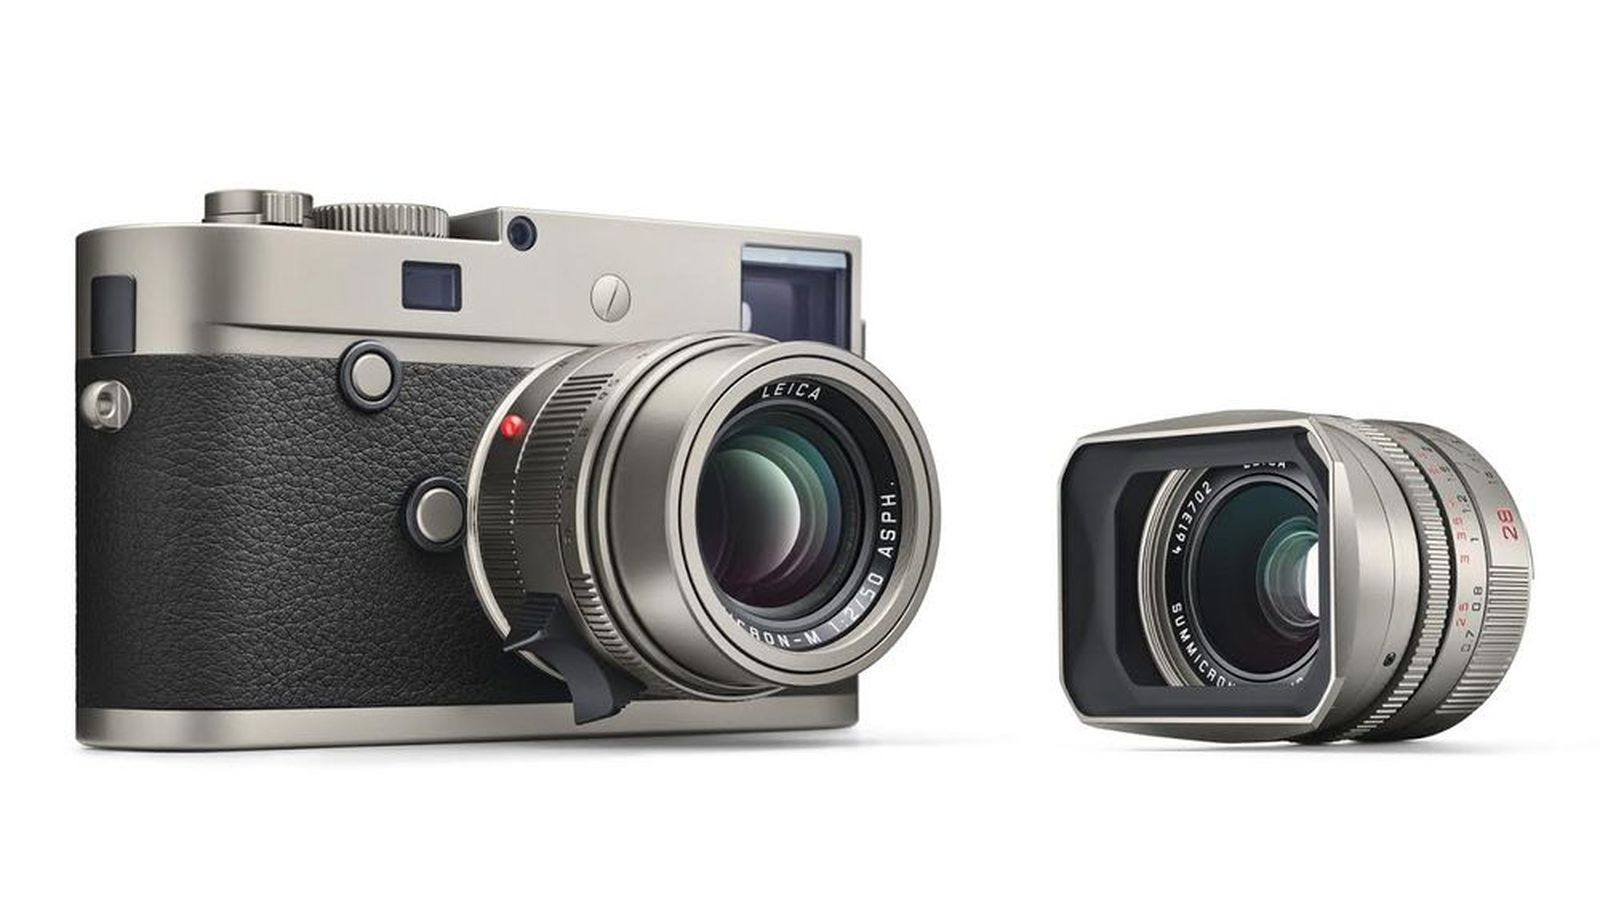 leica 39 s limited edition m p titanium camera looks cool will probably cost as much as a car. Black Bedroom Furniture Sets. Home Design Ideas